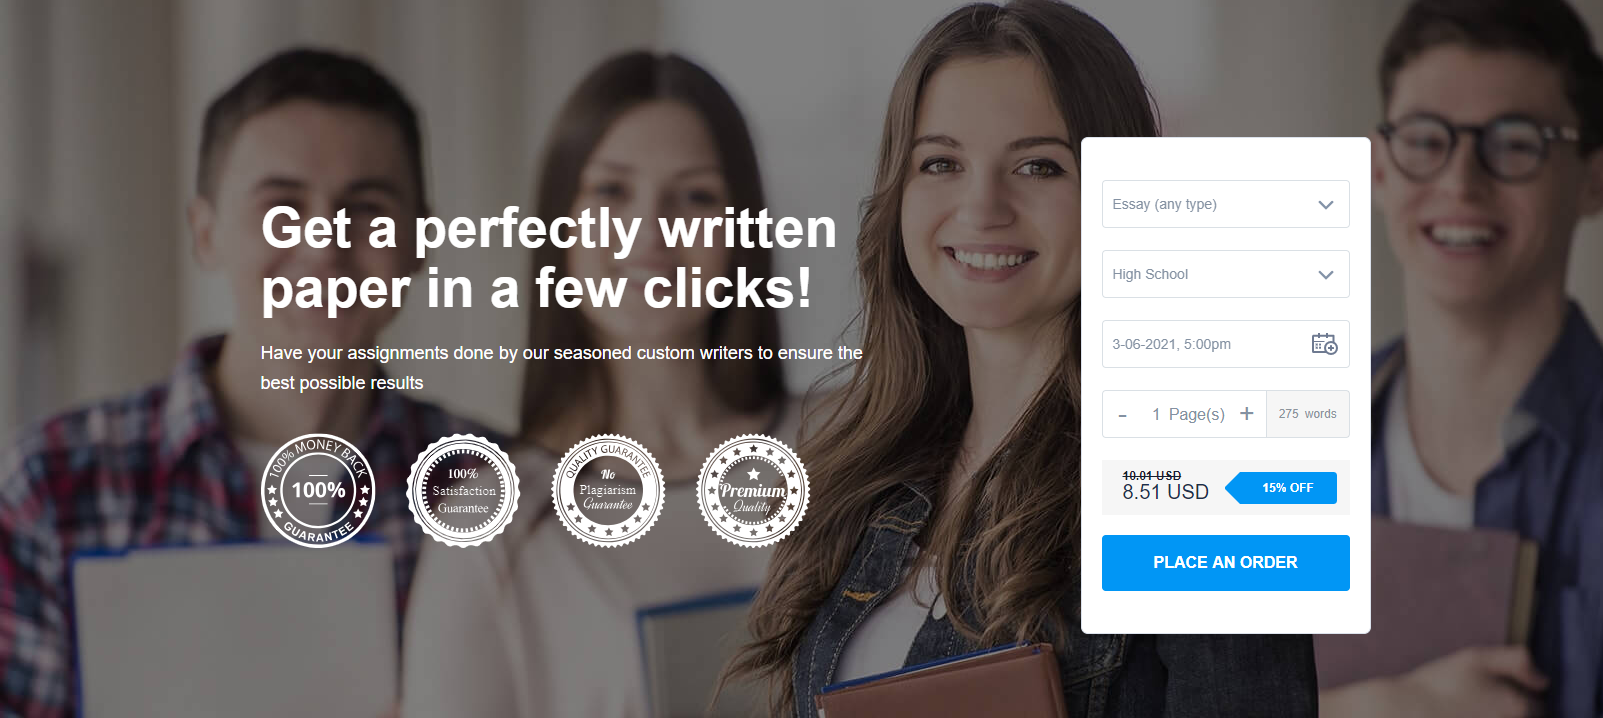 Bestcustomwriting.com Writing Service Review by TheLegitEssay